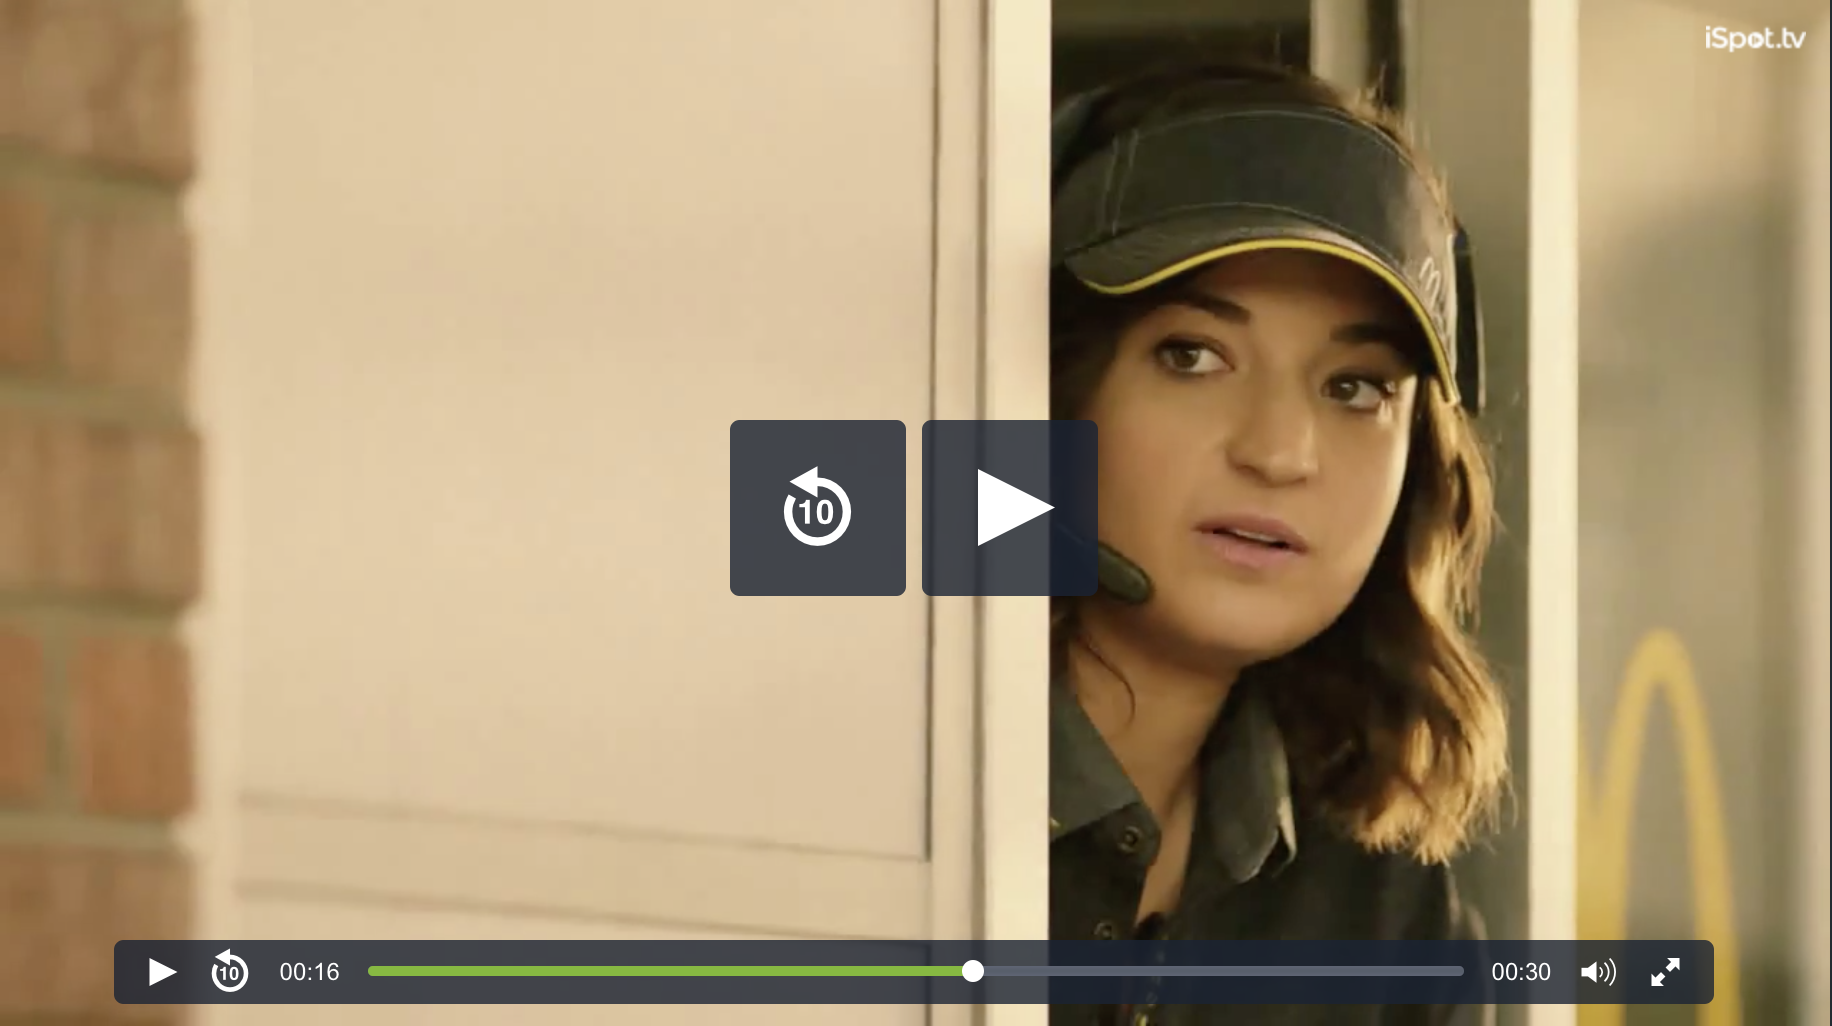 National McDonald's Commercial now airing!